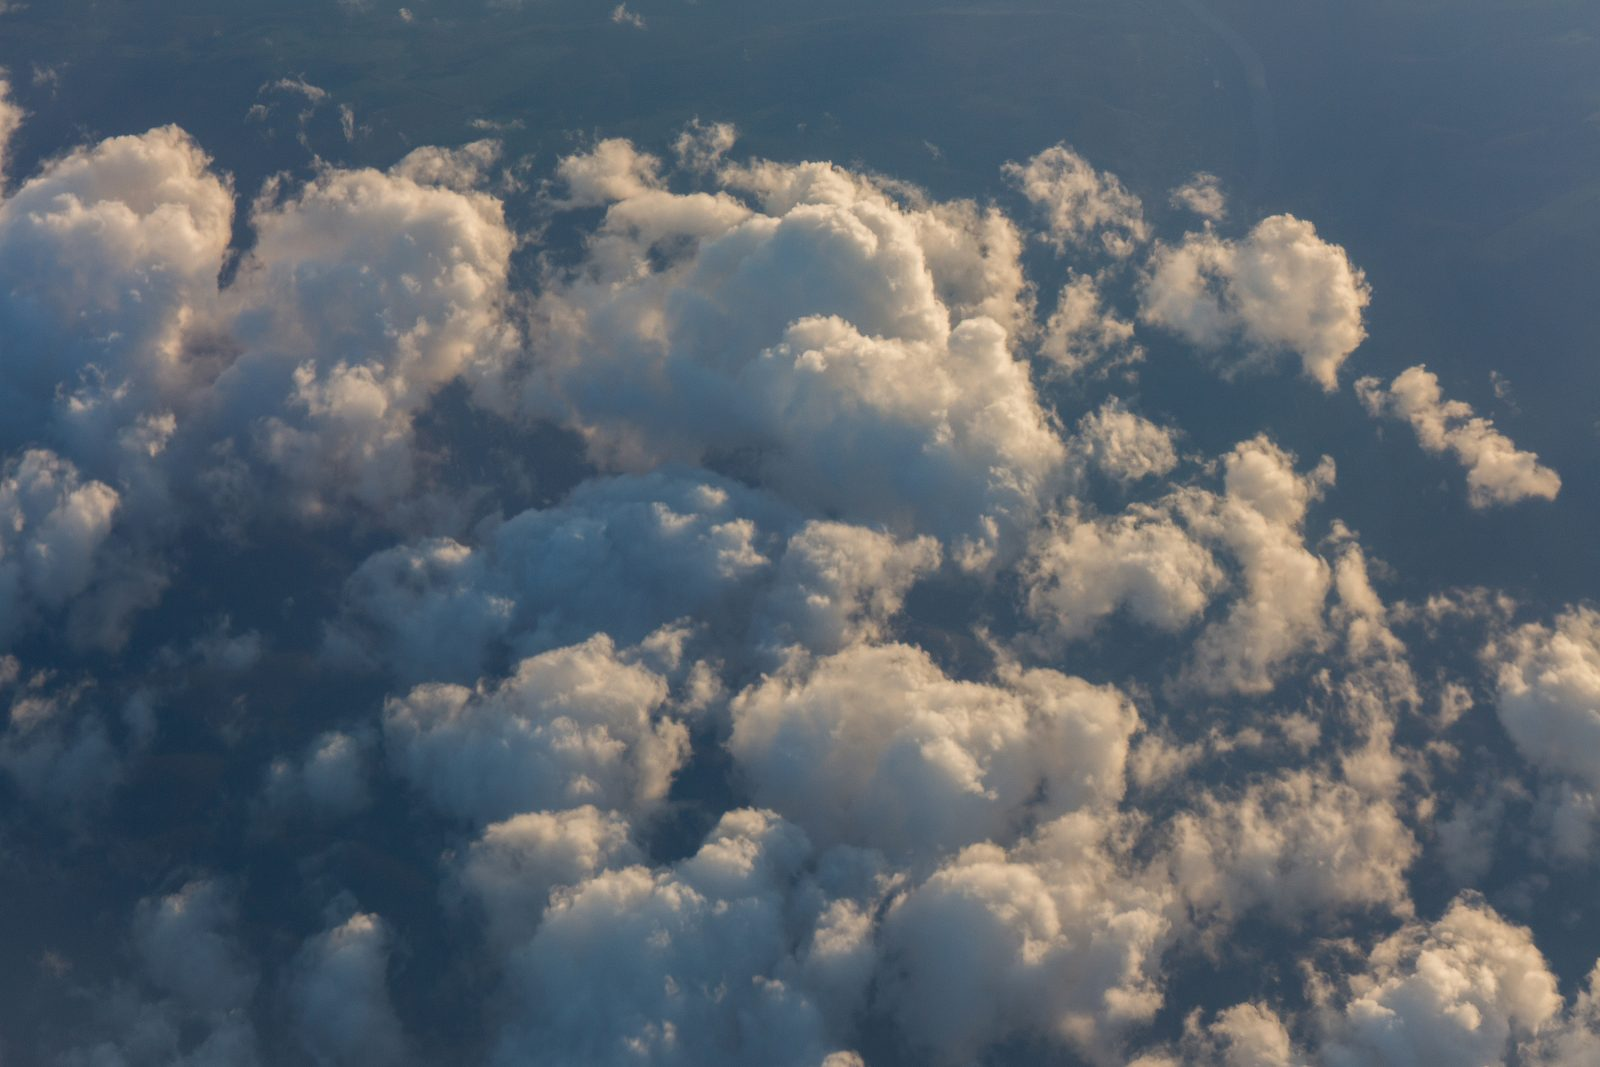 Clouds on the sky seen from above